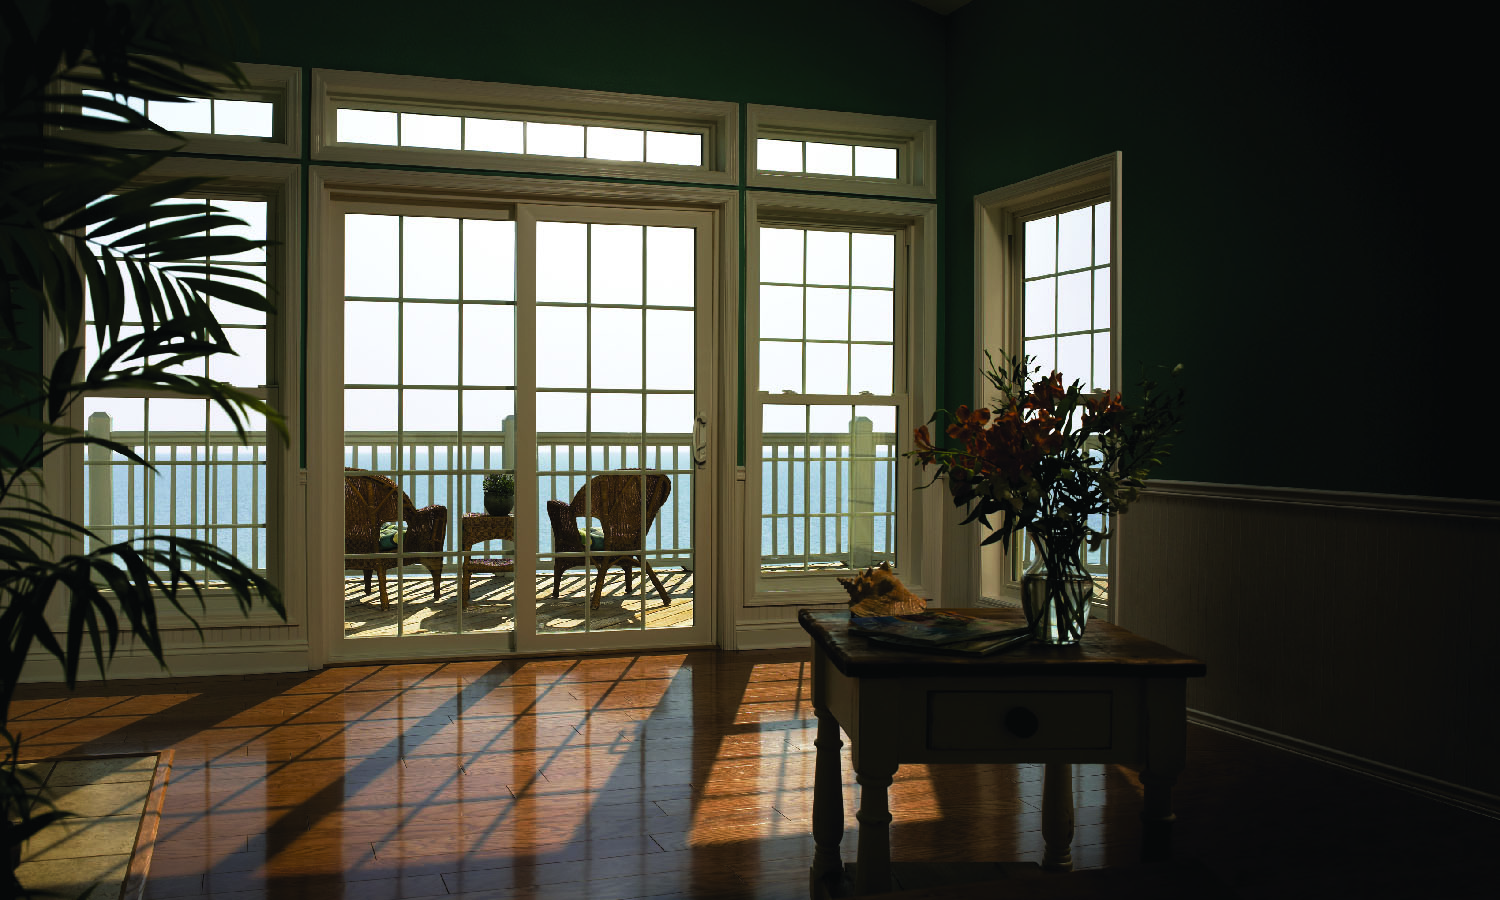 Sliding patio doors are surrounded by double hung windows with colonial grid pattern amplifying space and exterior view